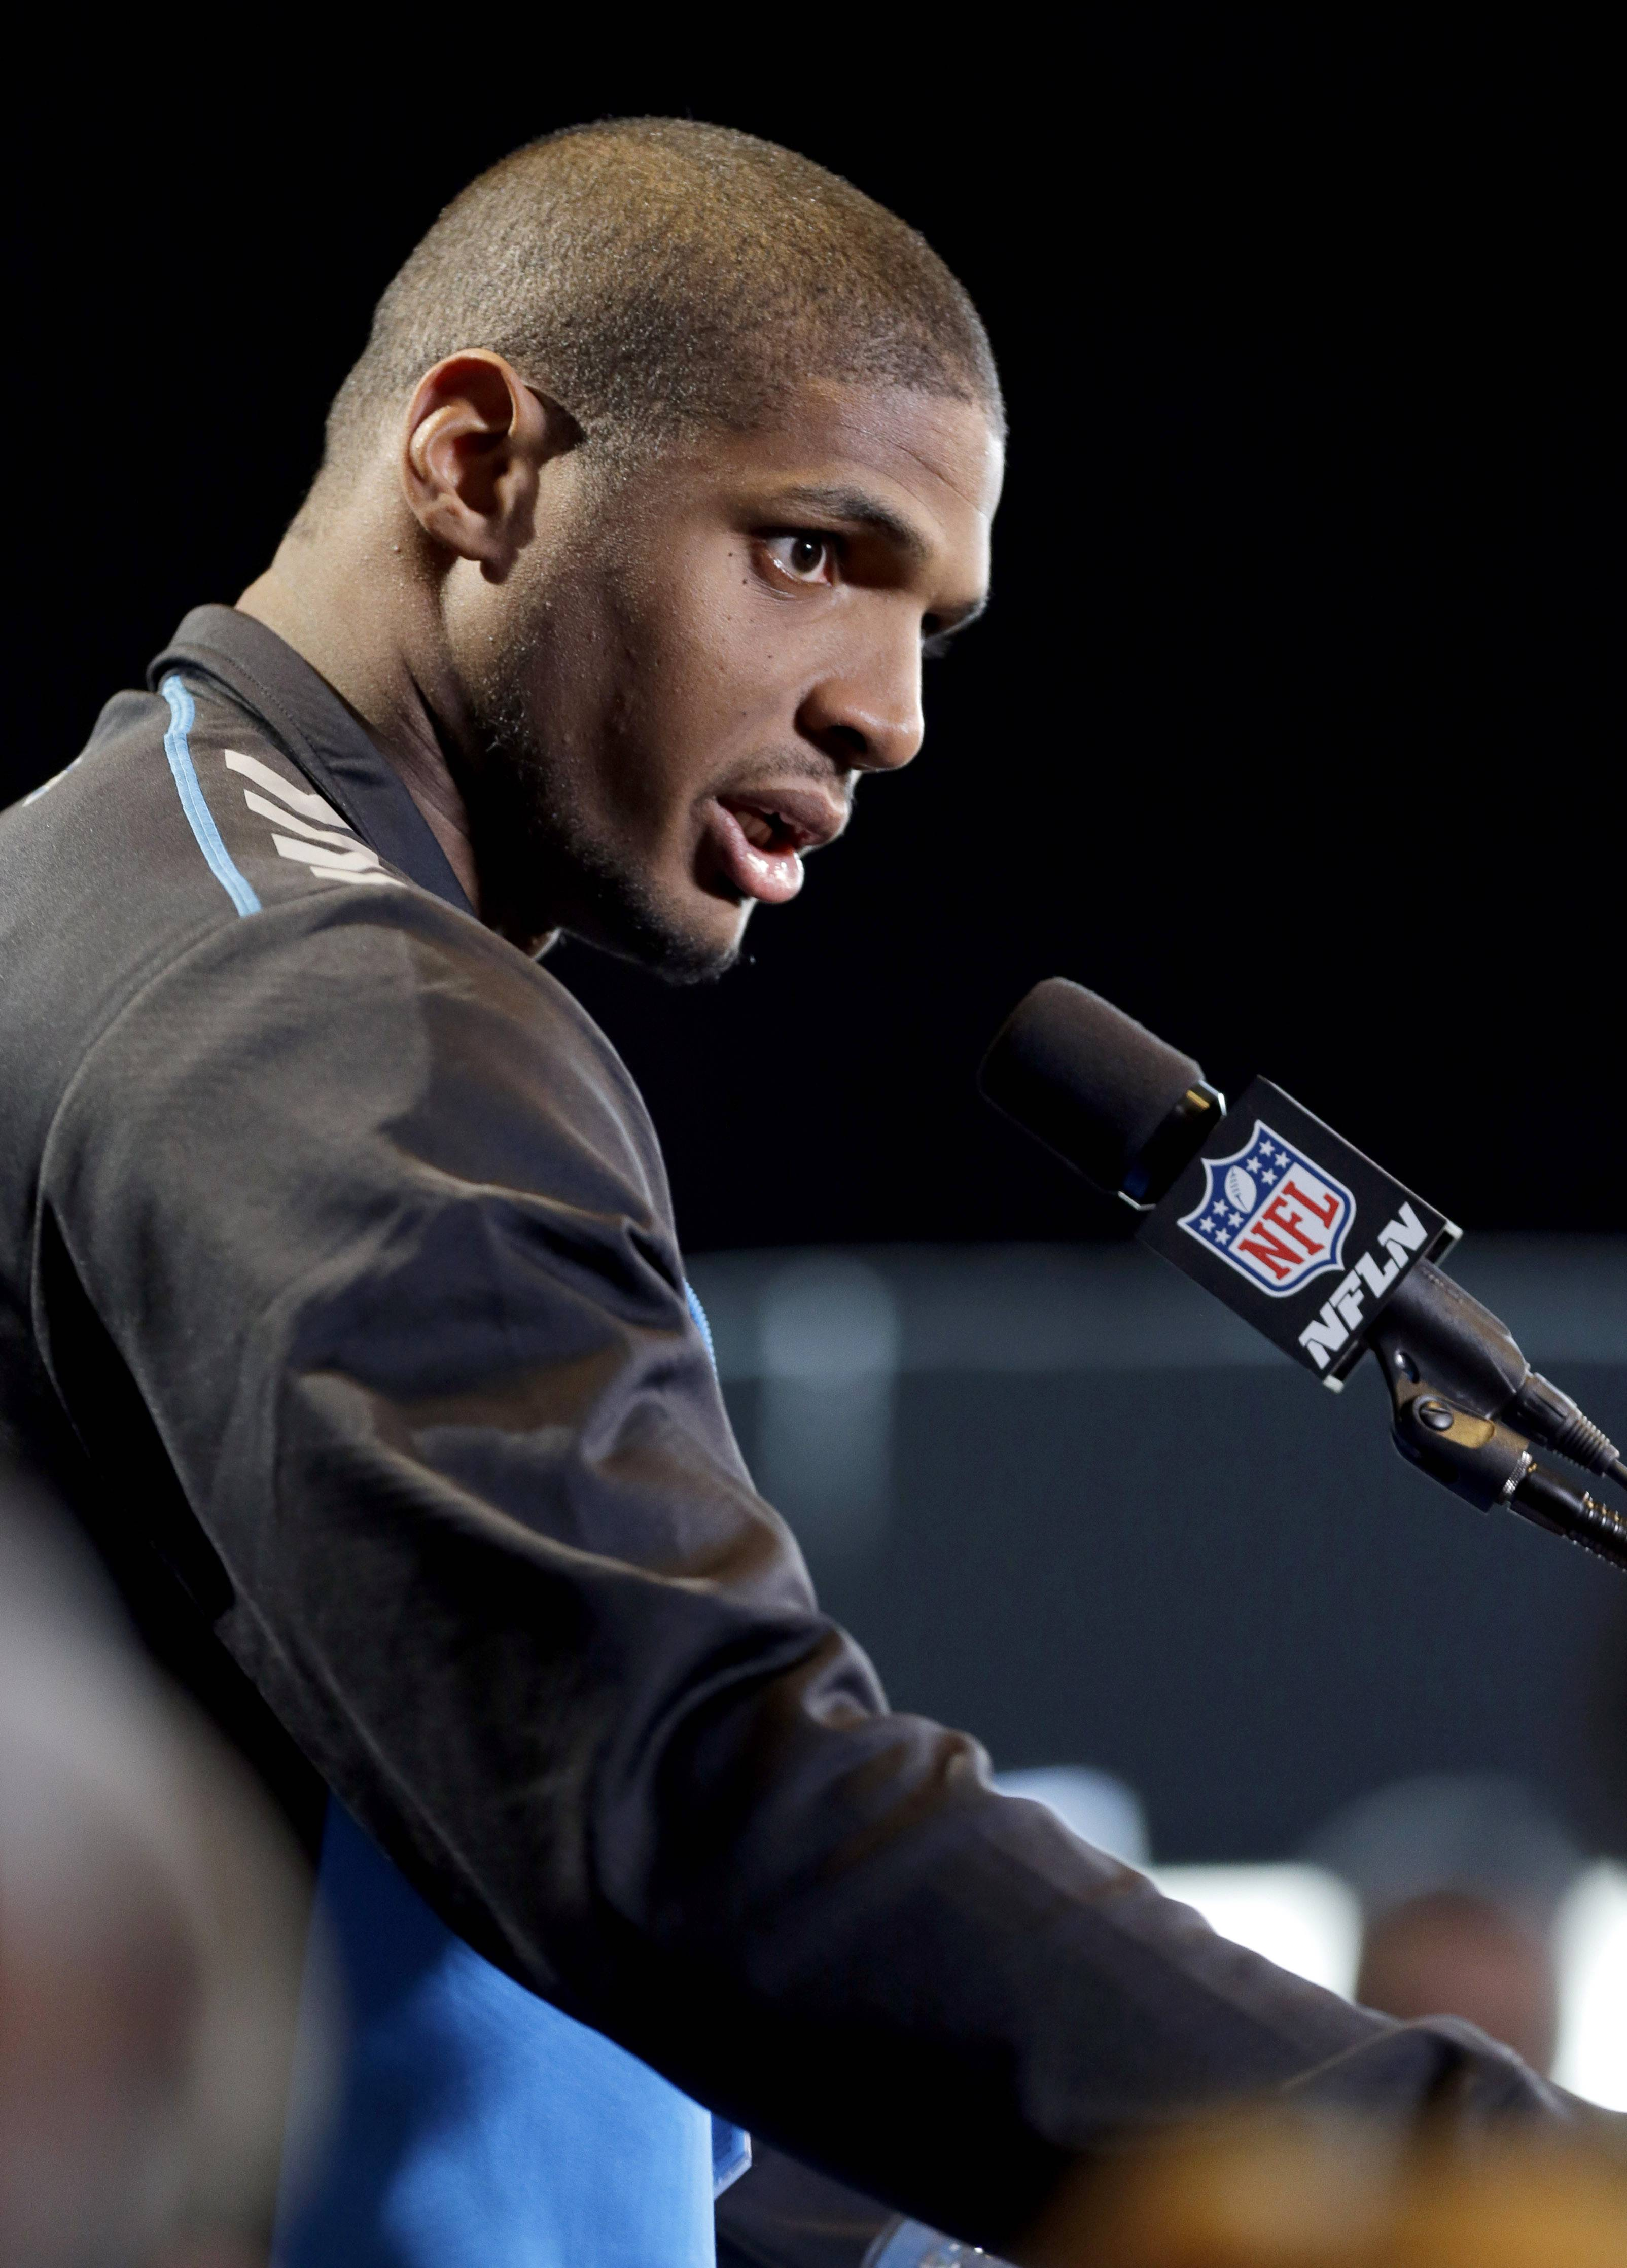 Missouri defensive end Michael Sam speaks during a news conference at the NFL football scouting combine in Indianapolis, Saturday, Feb. 22, 2014.